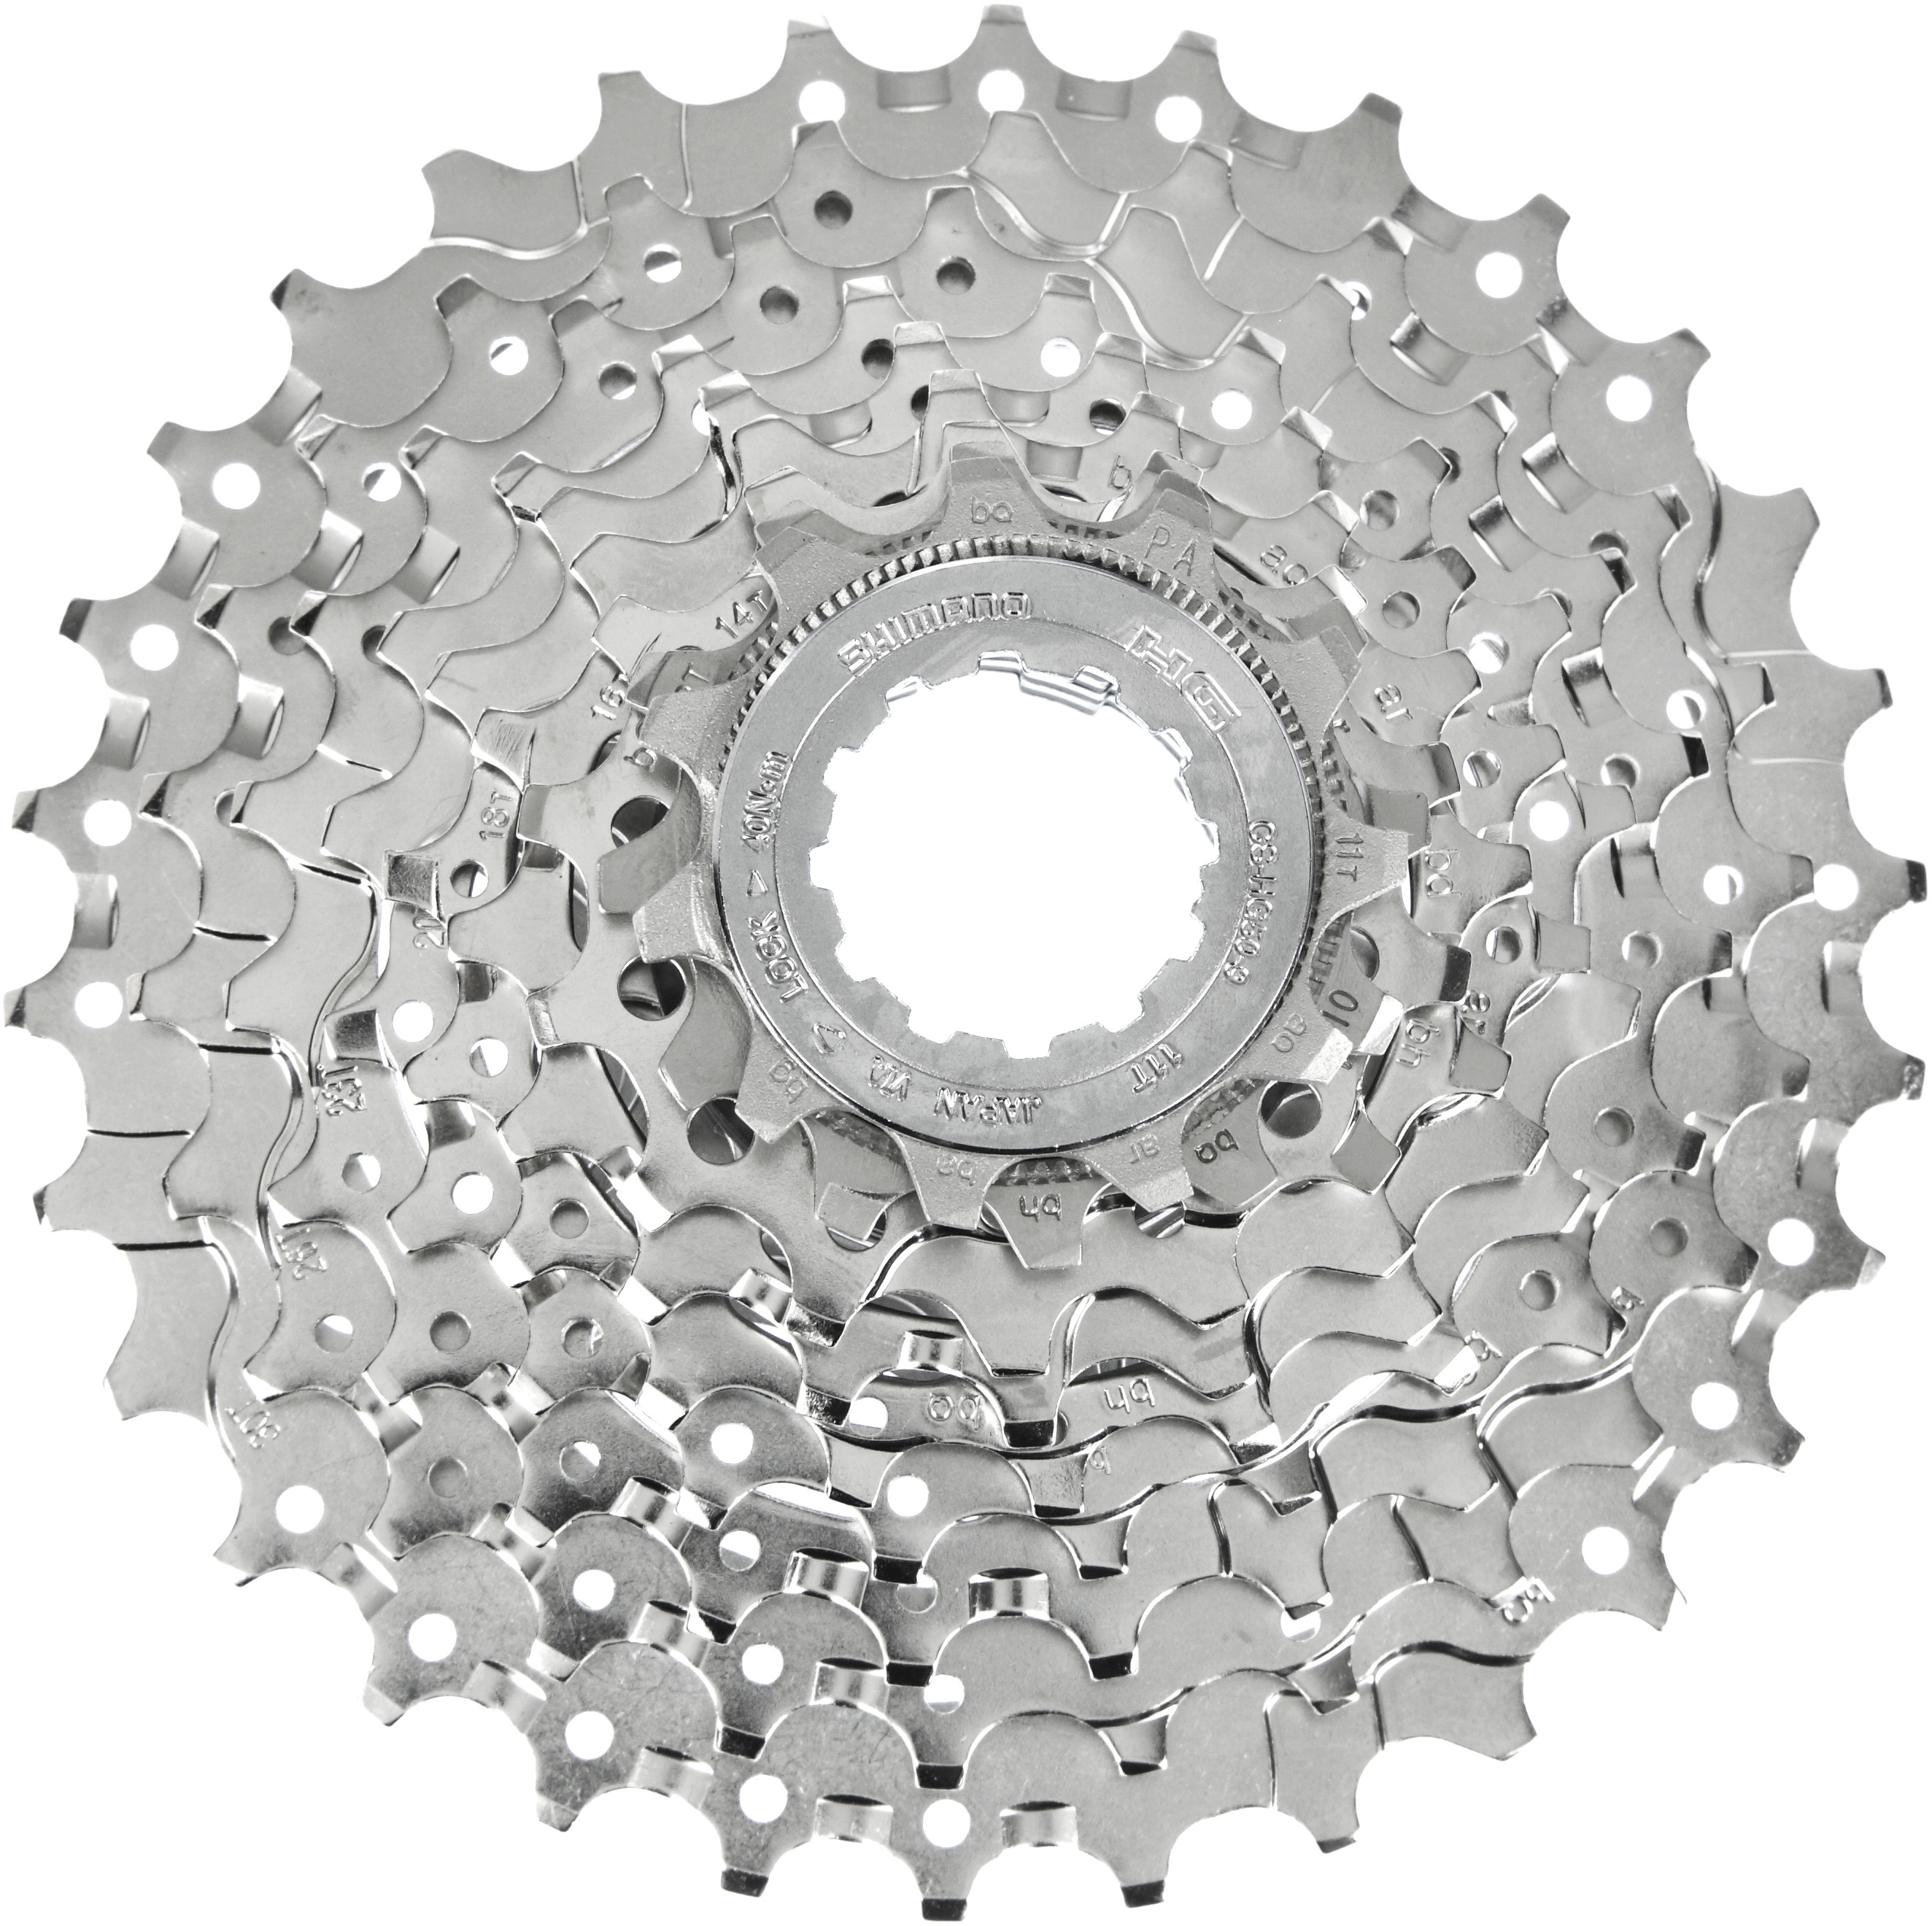 CS-HG50 9-speed cassette 11-30